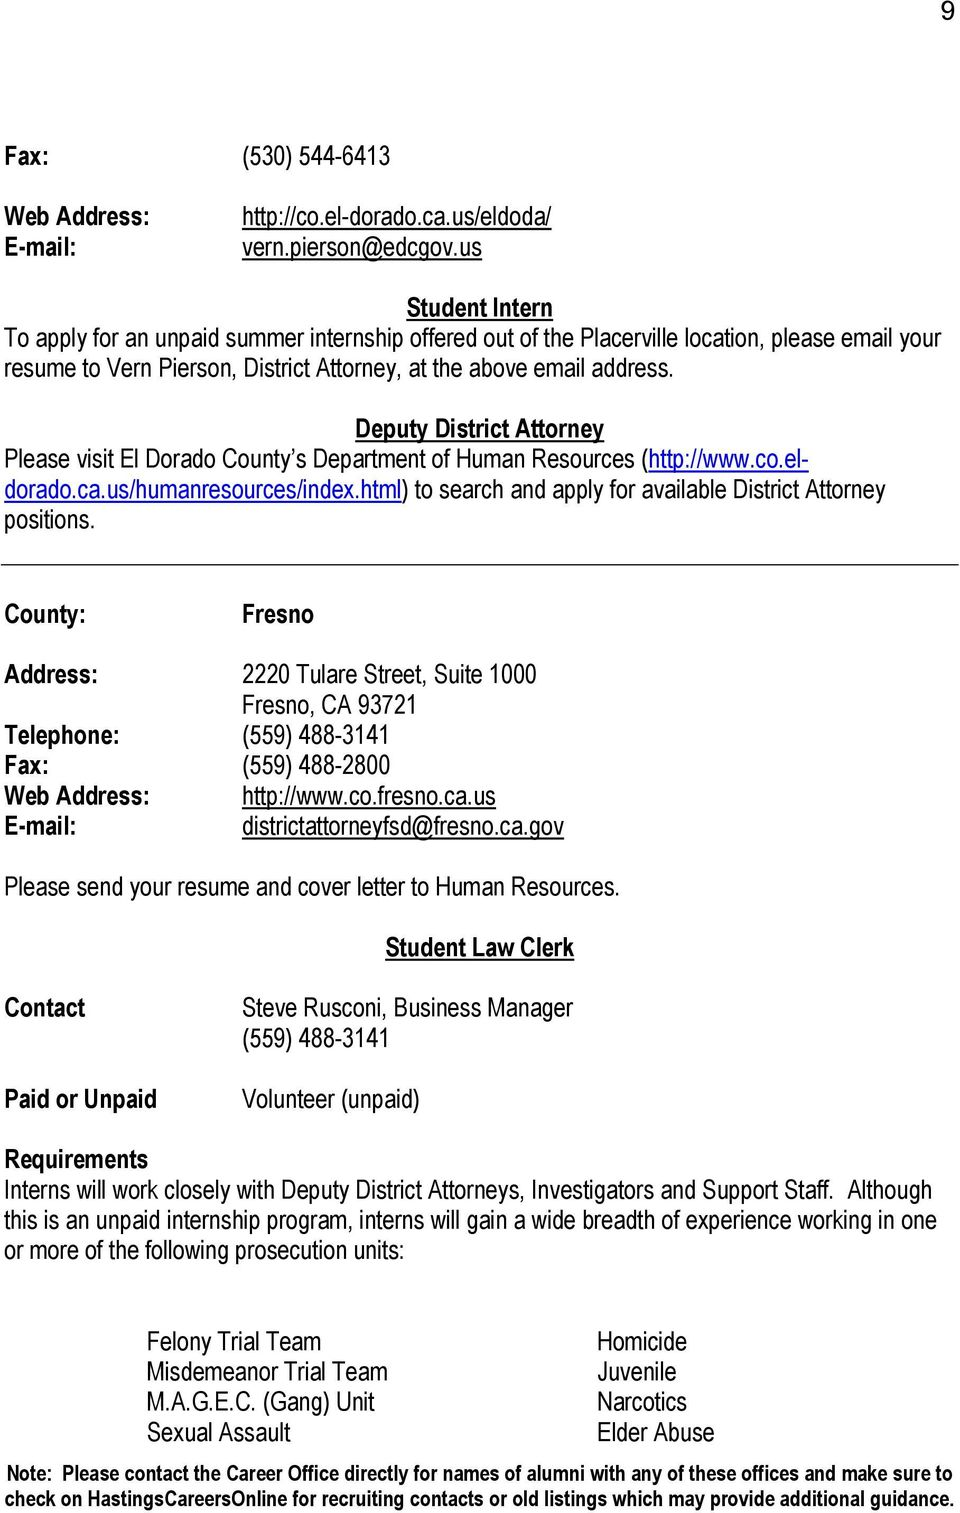 Please visit El Dorado County s Department of Human Resources (http://www.co.eldorado.ca.us/humanresources/index.html) to search and apply for available District Attorney positions.